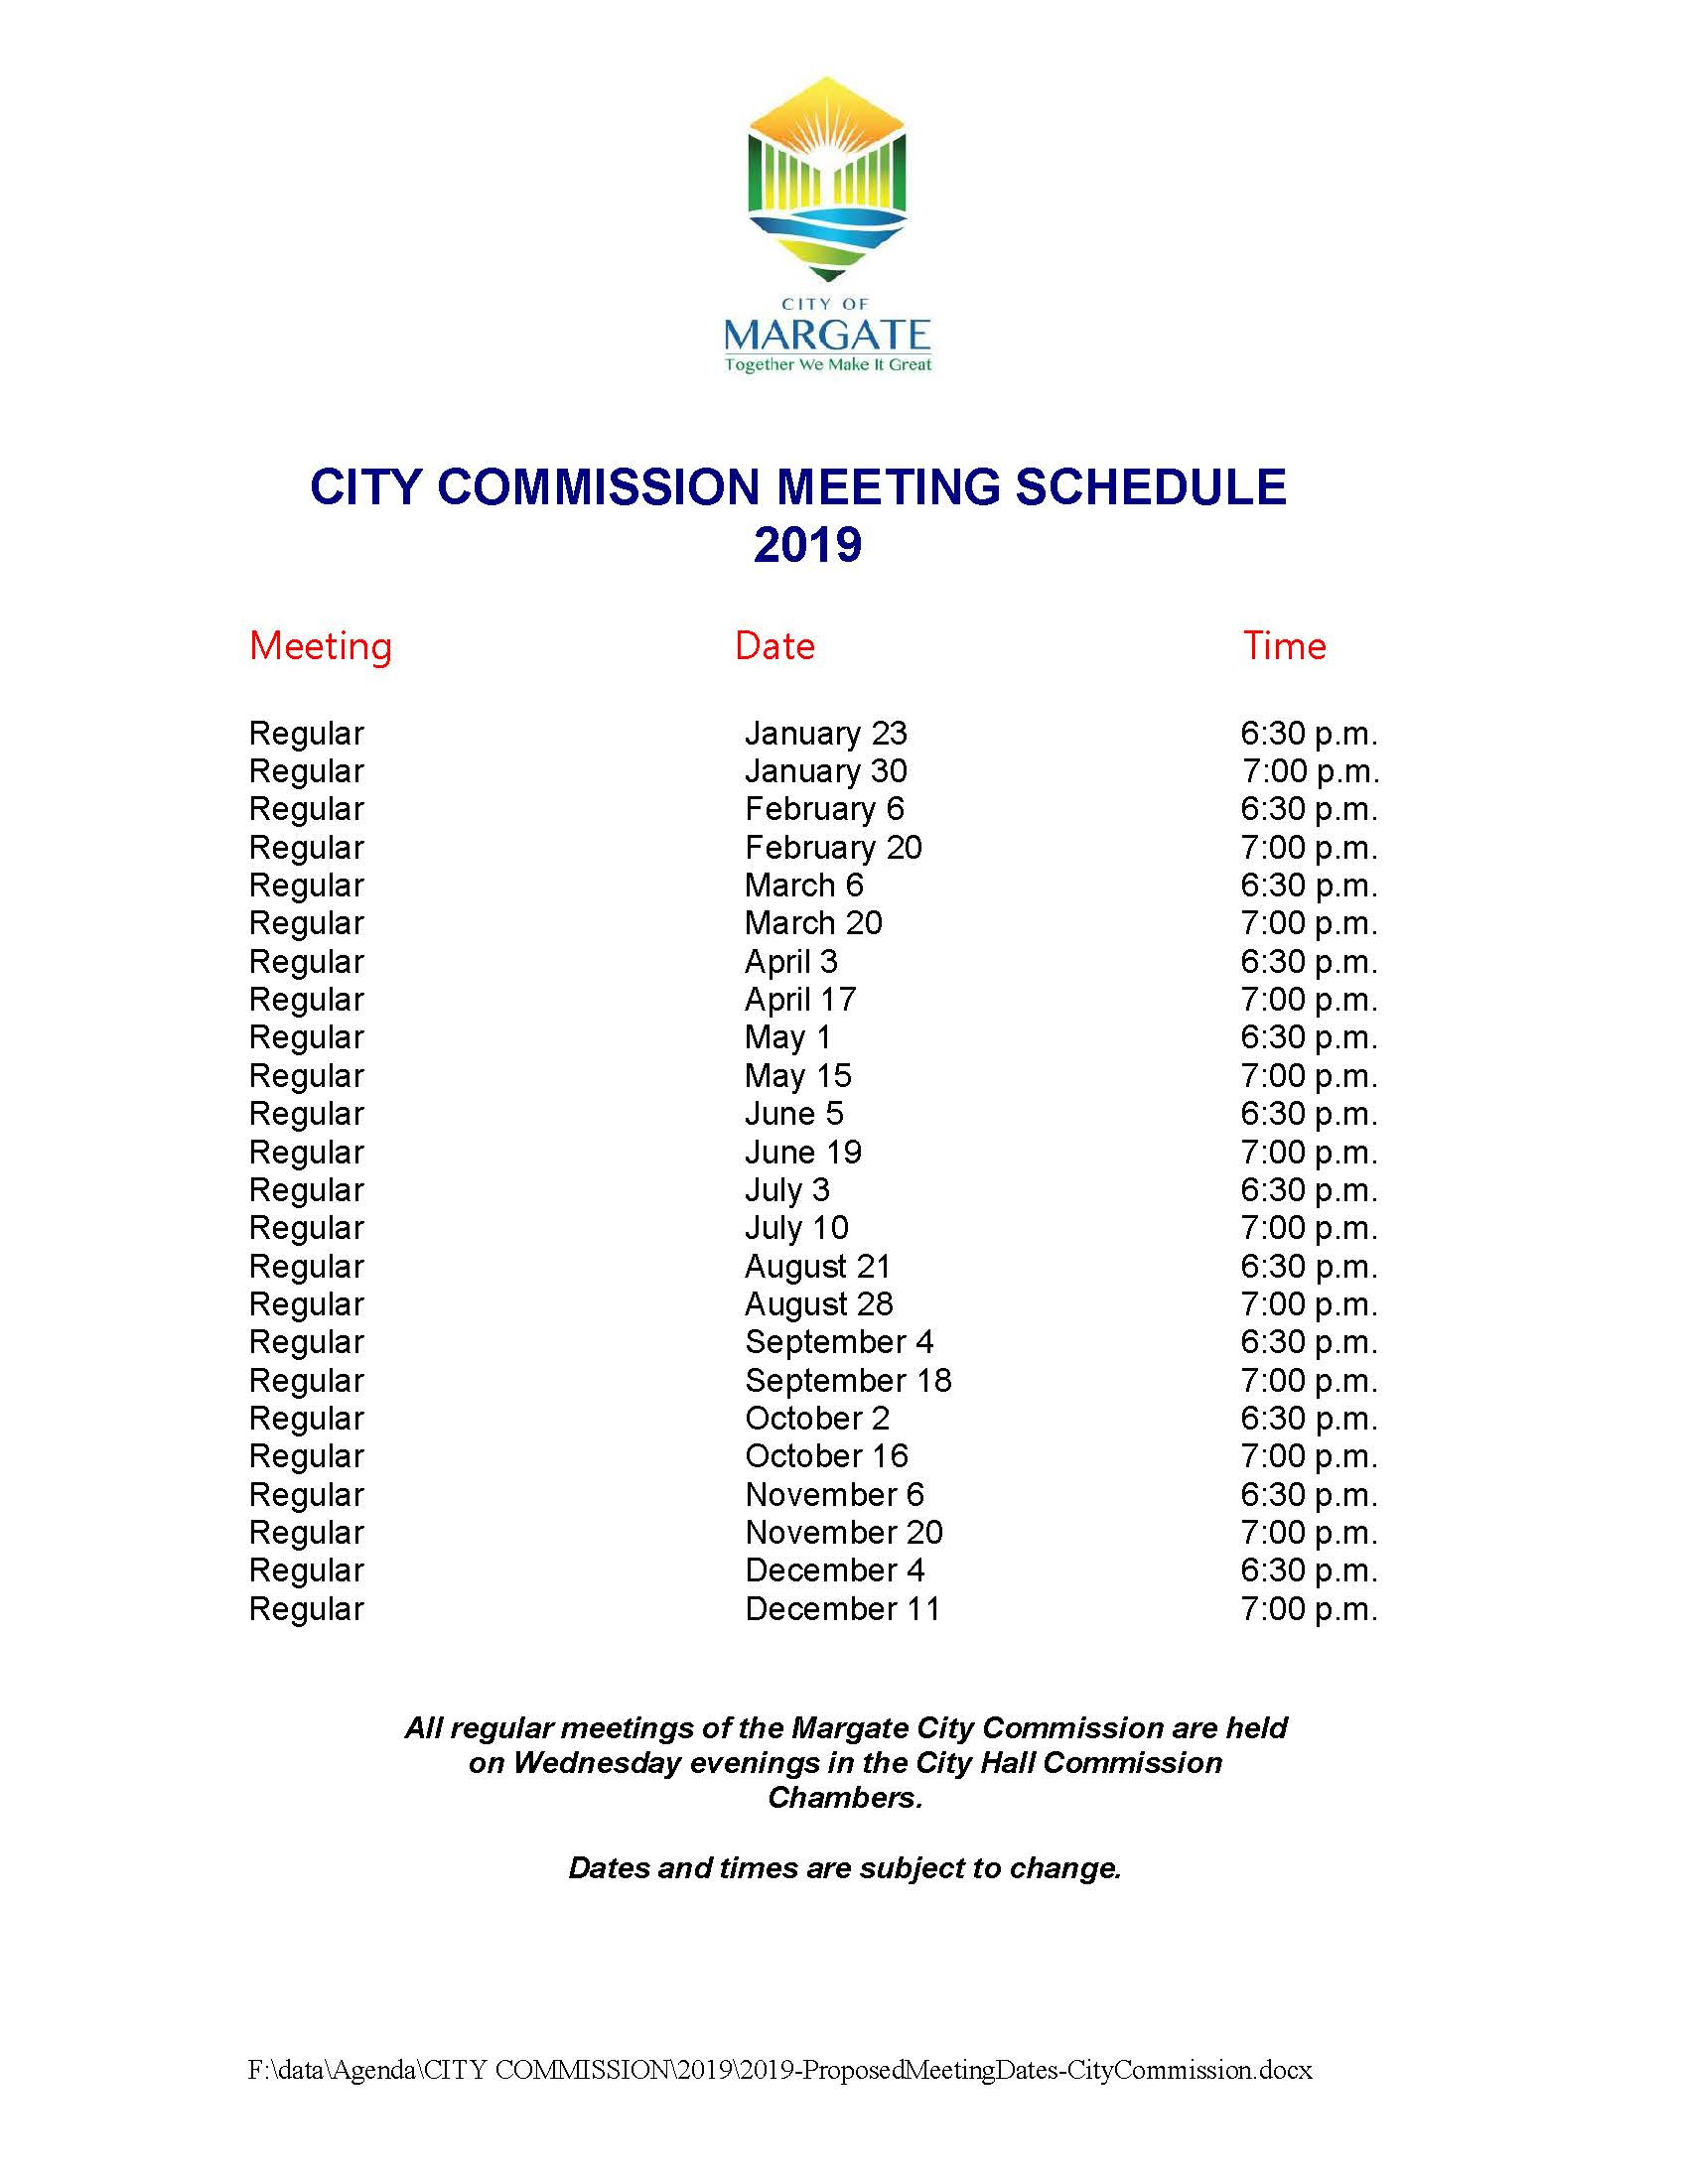 2019 Regular City Commission Meeting Dates